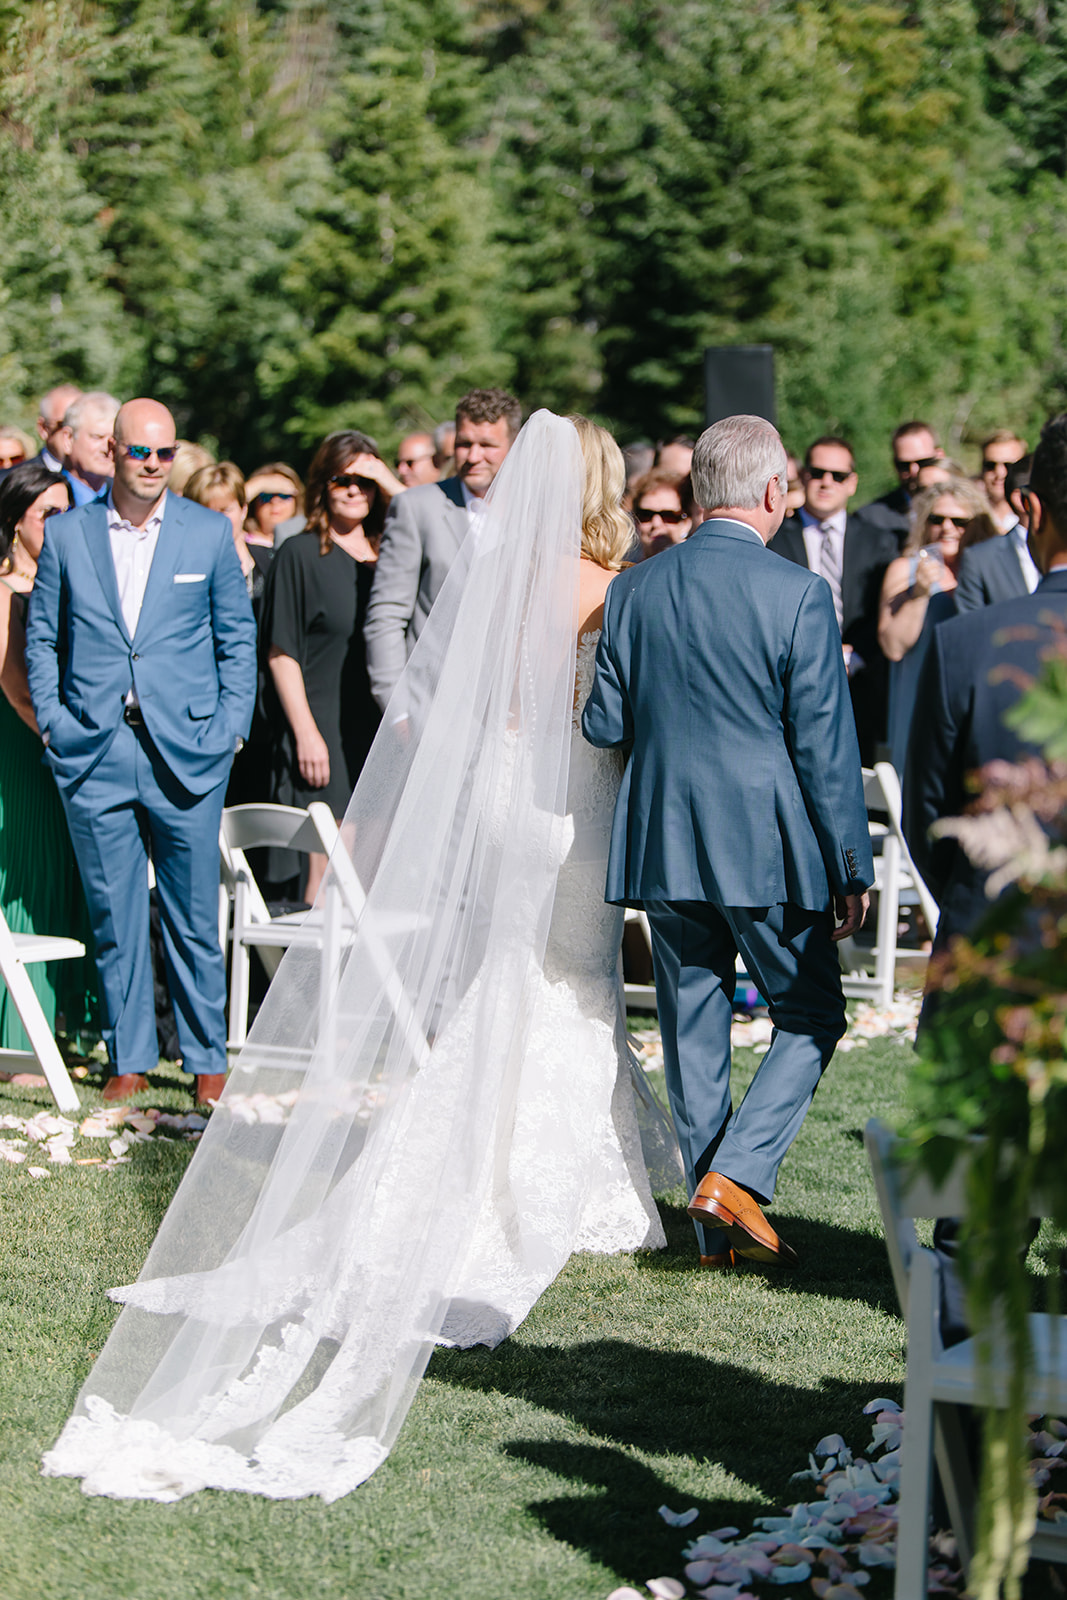 St. Regis Deer Valley Wedding | Summer Wedding | Blush and Cream Decor | Contemporary Wedding Design | Michelle Leo Events | Utah Event Planner and Designer | Heather Nan Photography